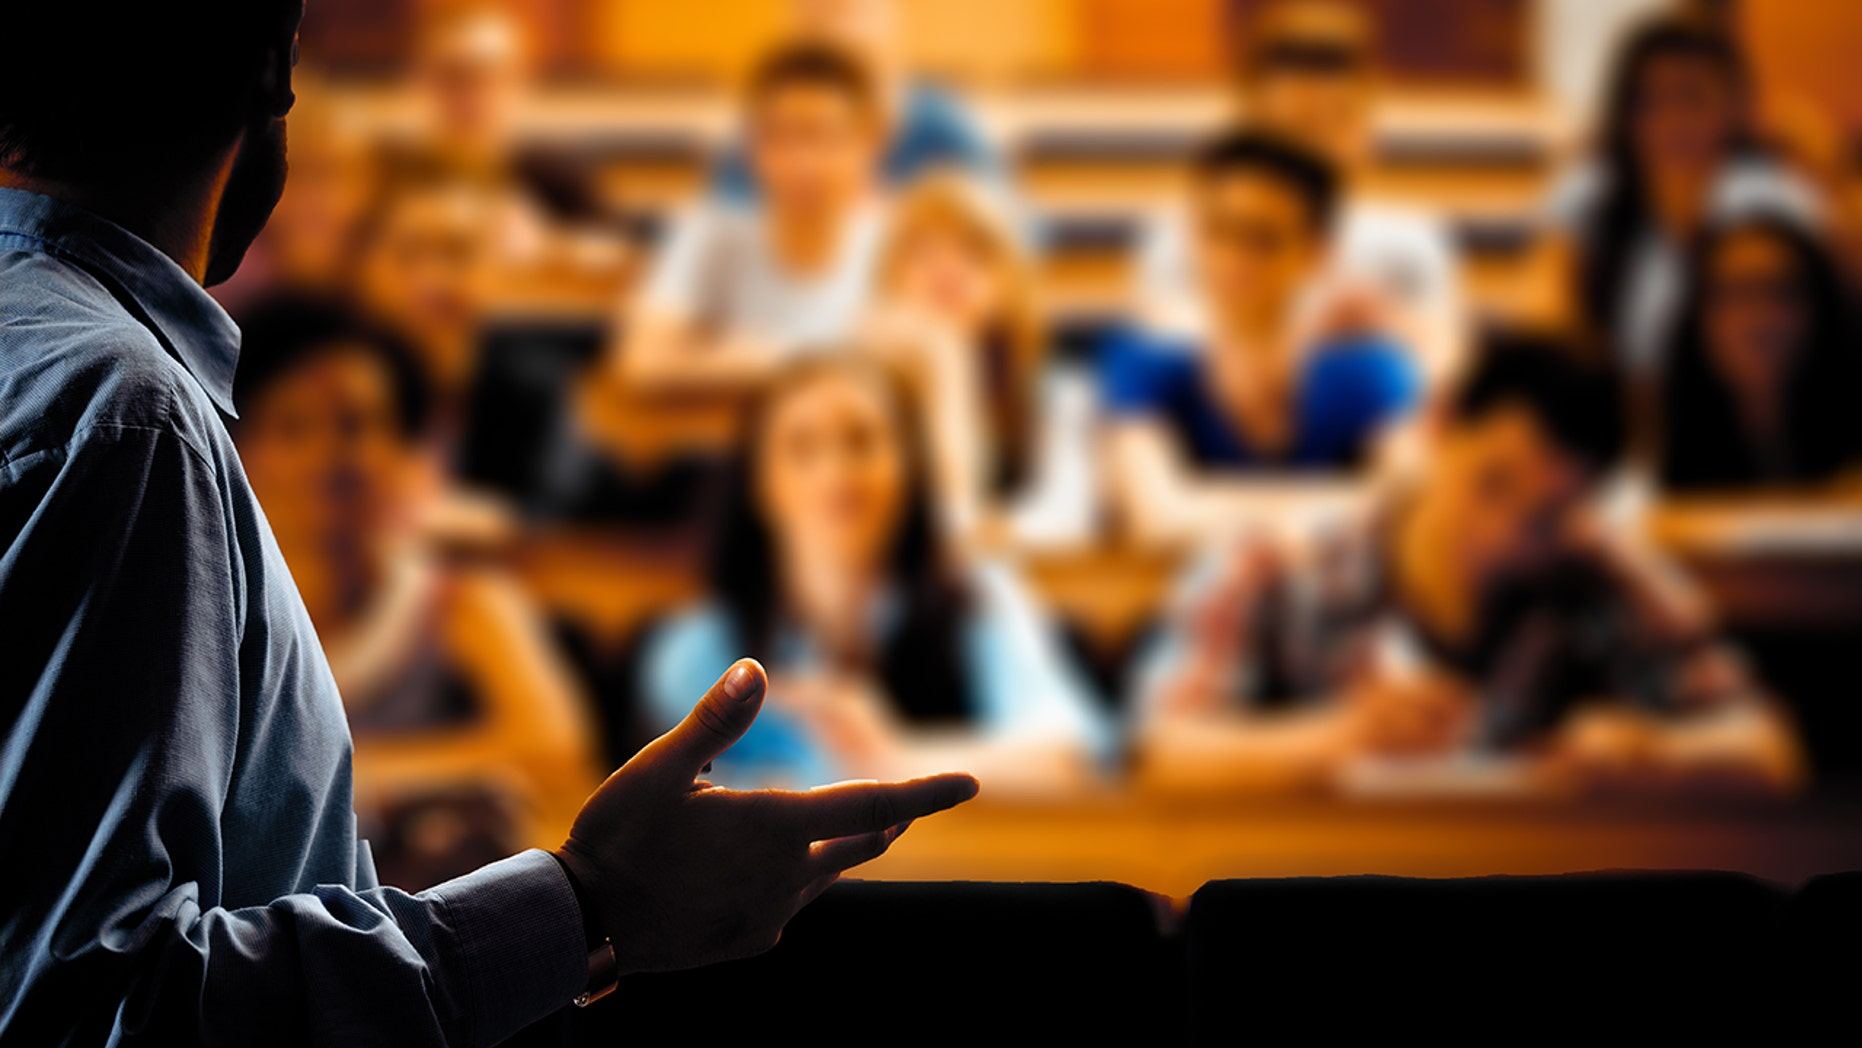 Large group of students sitting in the lecture hall at university and listening to their teacher. Focus on the professor. Dark tones.